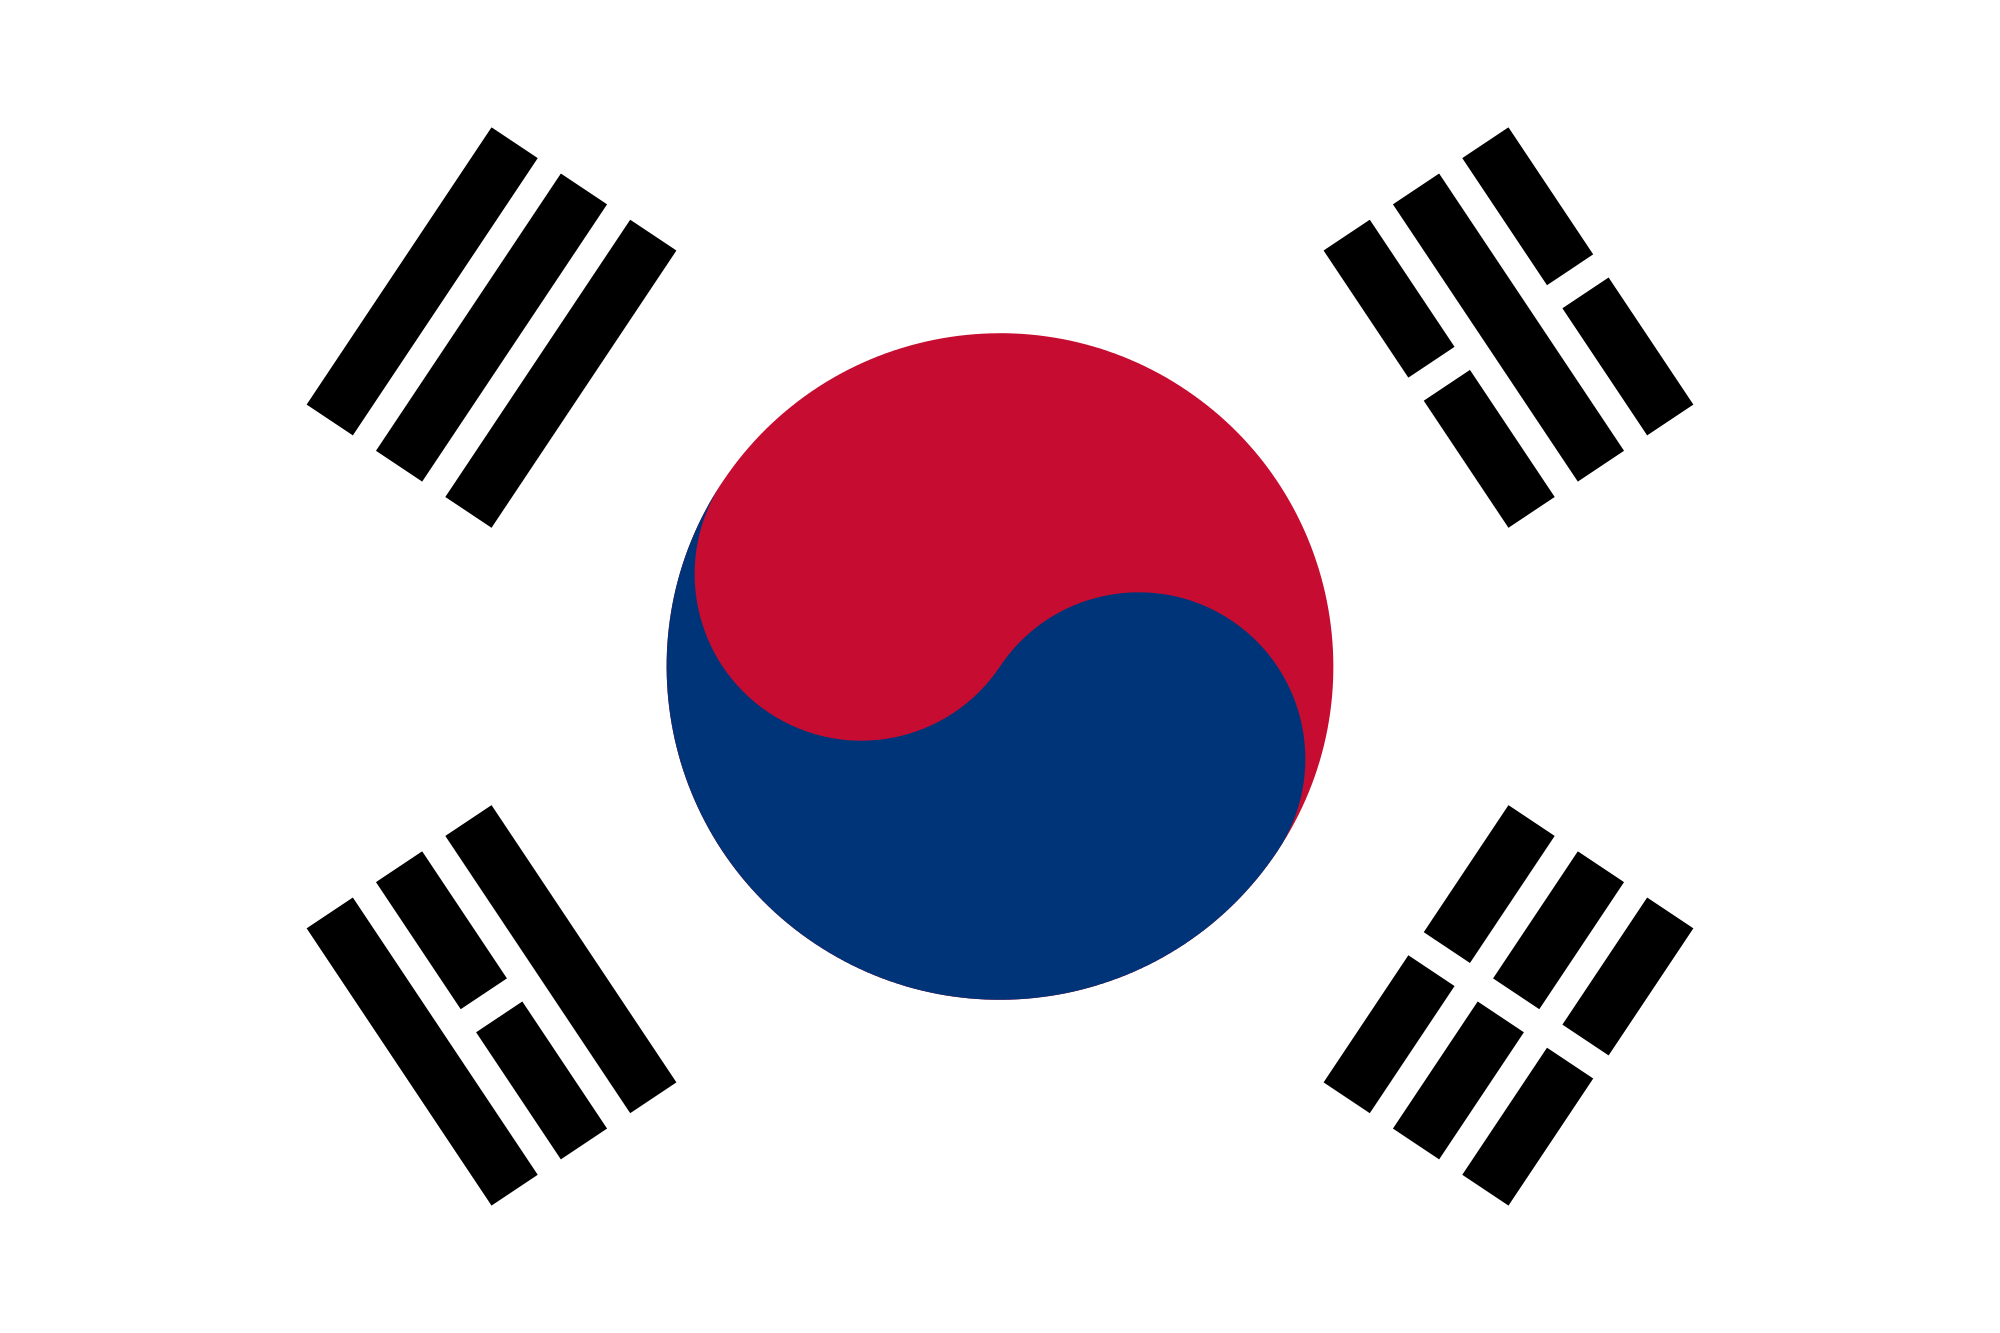 South Korea July wood pellet imports down 22% on year at 126,012 mt